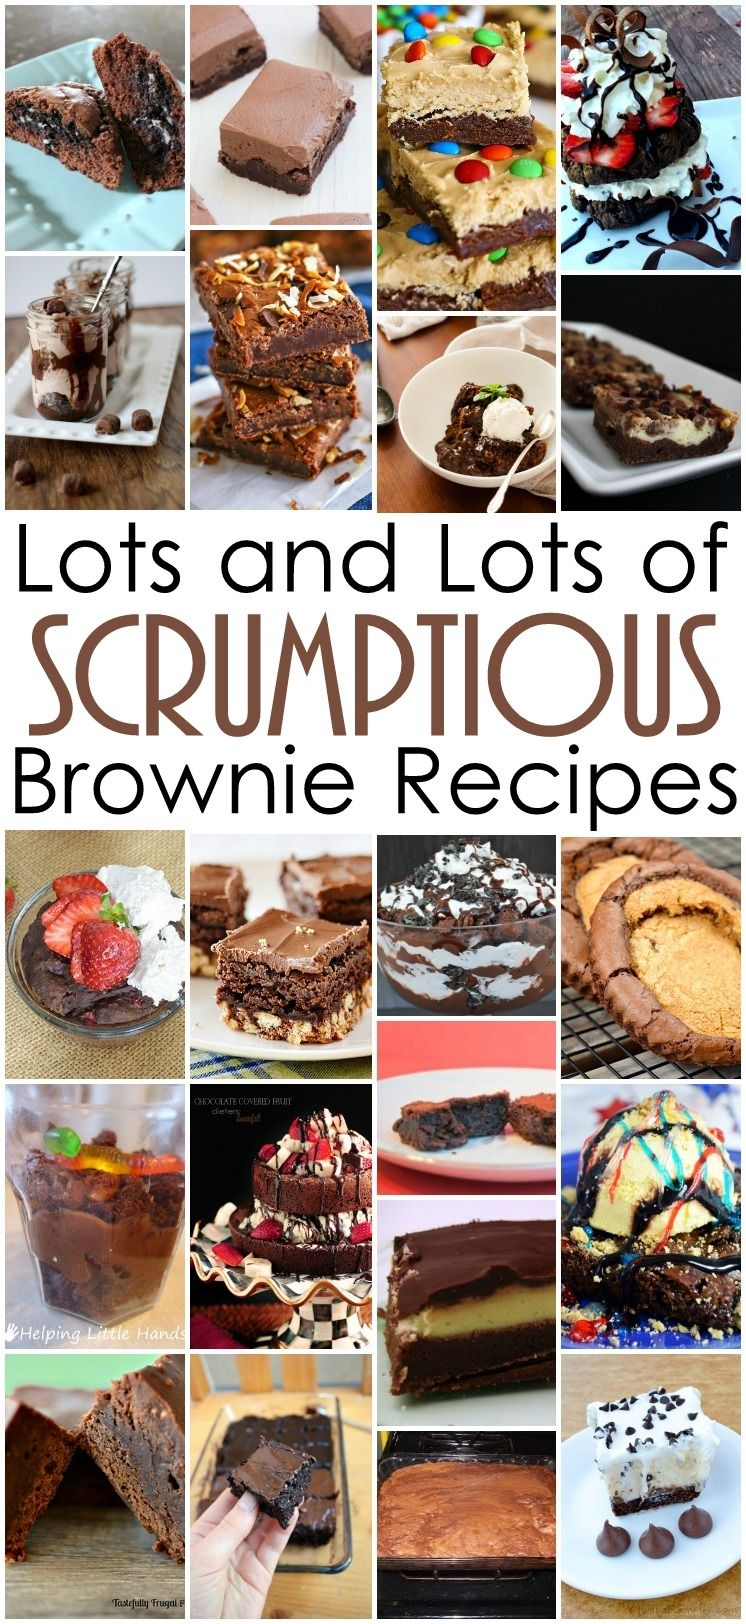 Tons of easy and delicious brownie dessert recipes. All these brownies look so good. even some healthy ones.